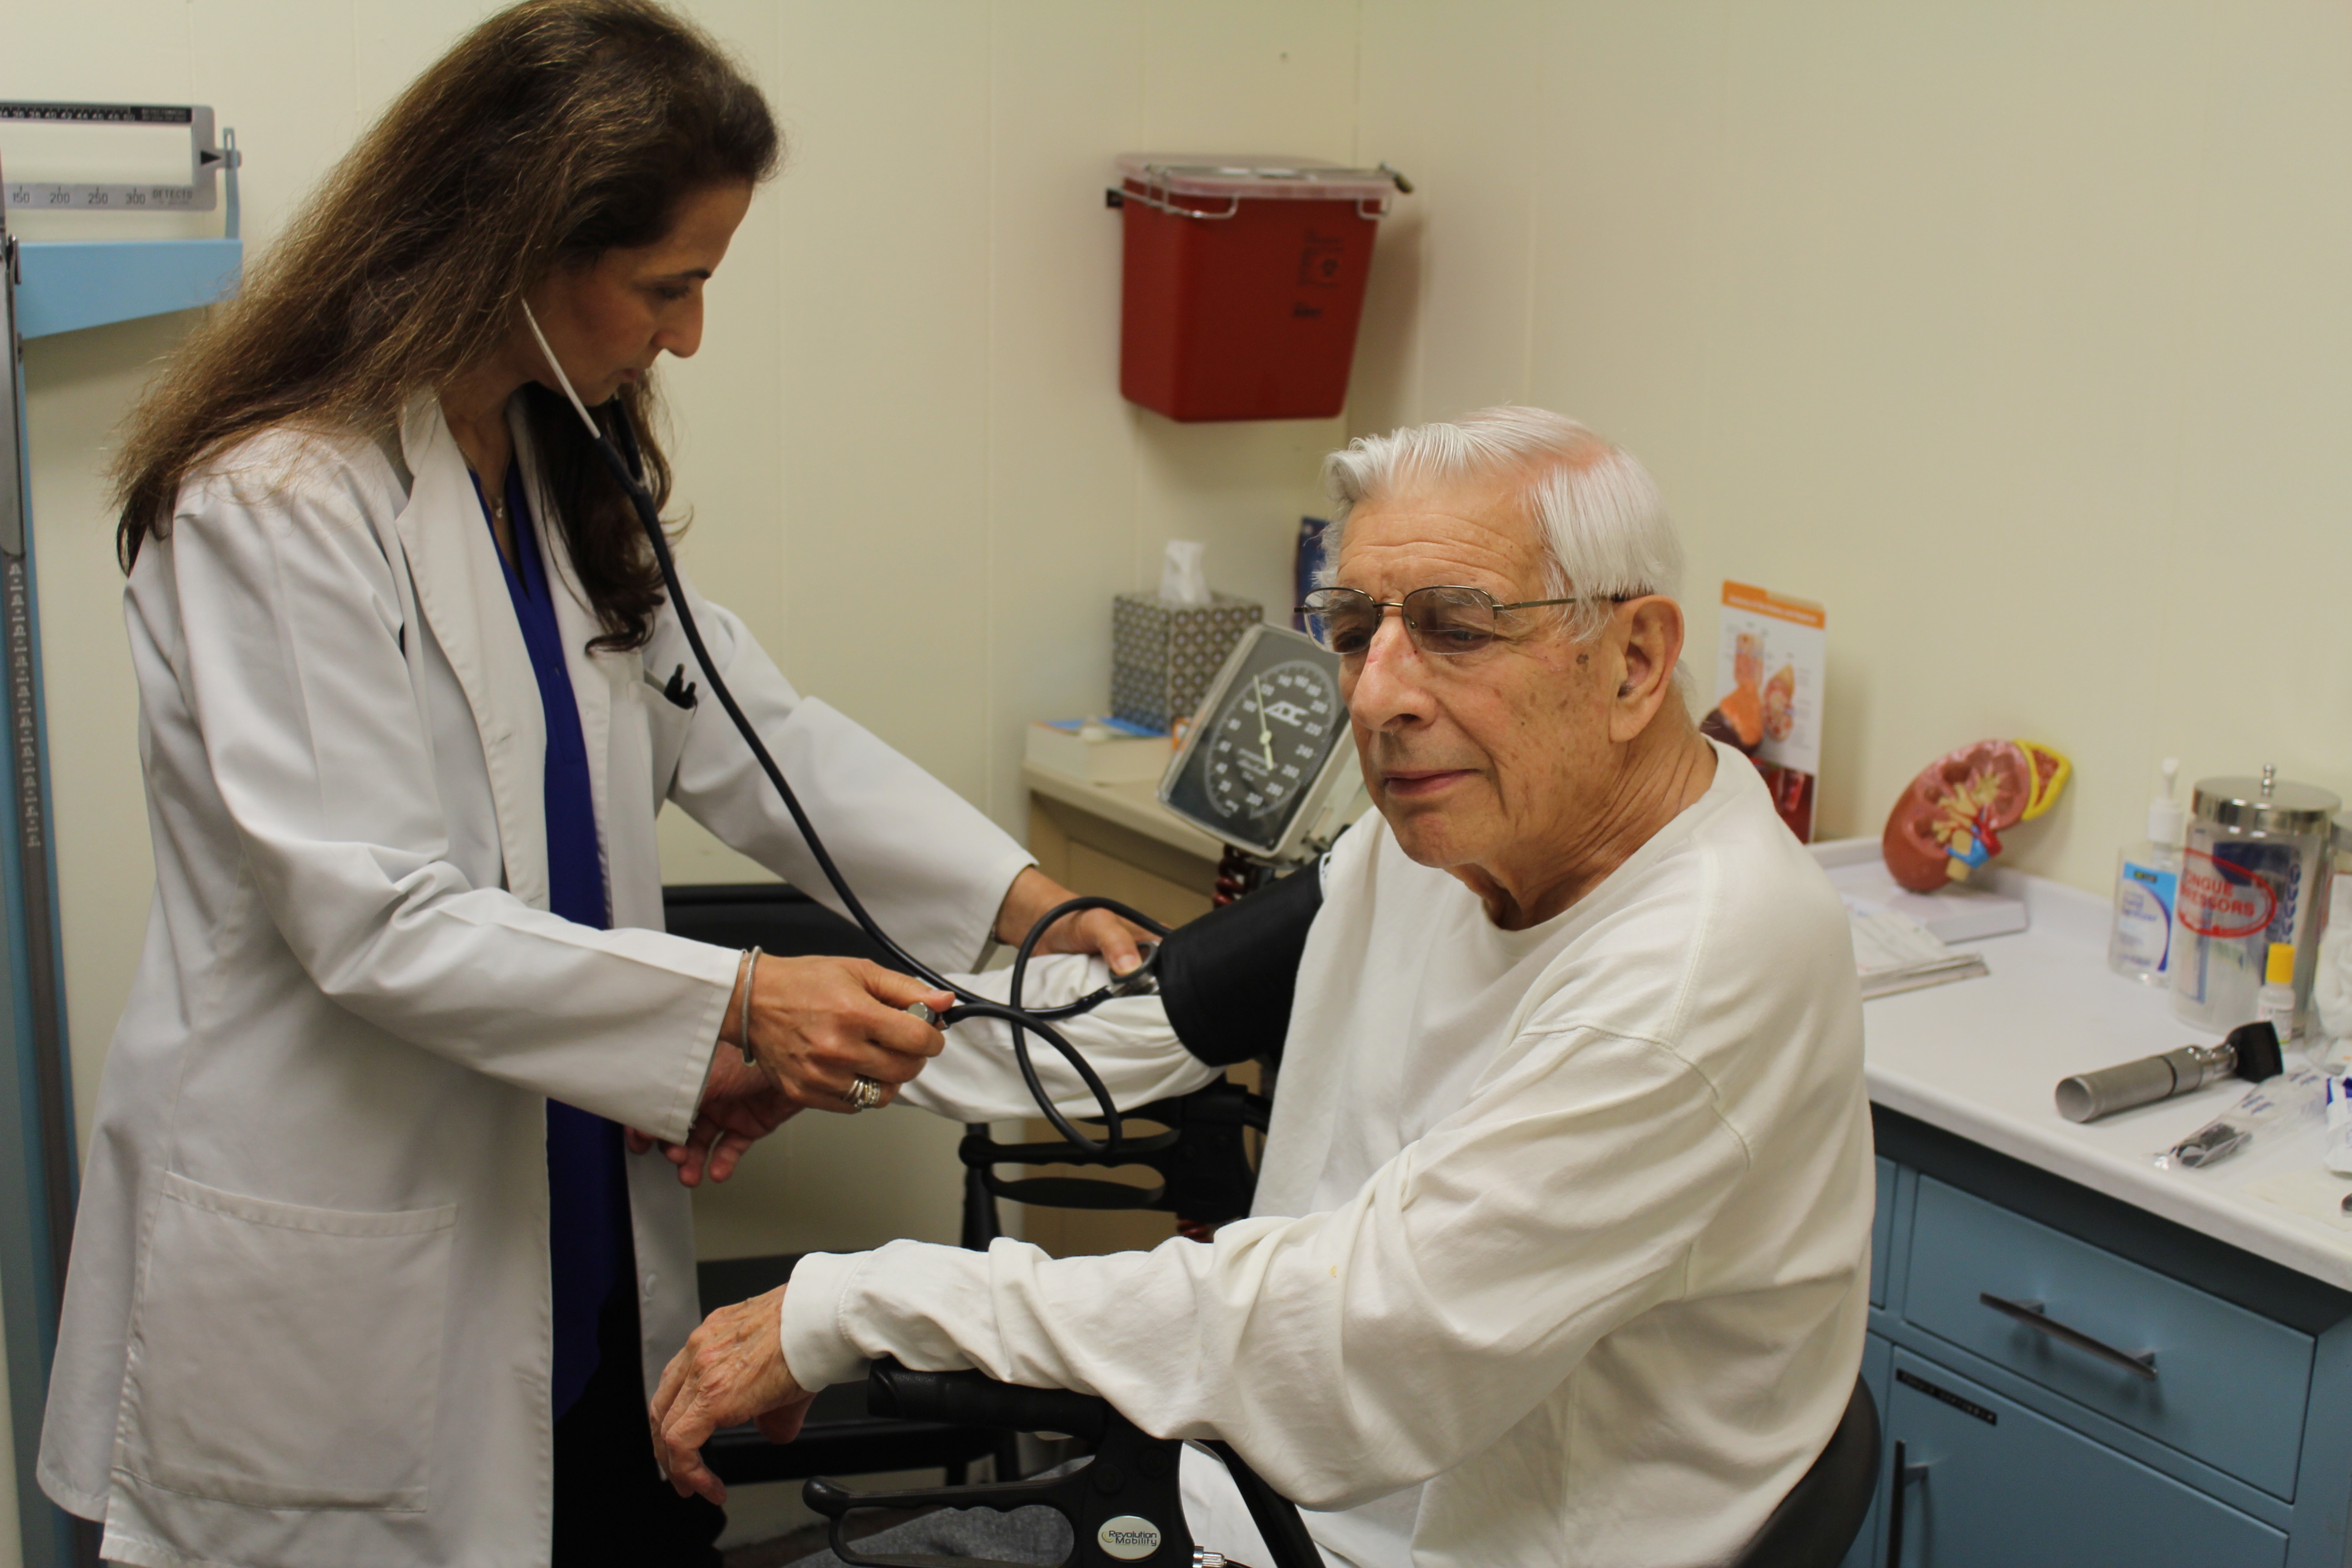 Nephrologist checking blood pressure